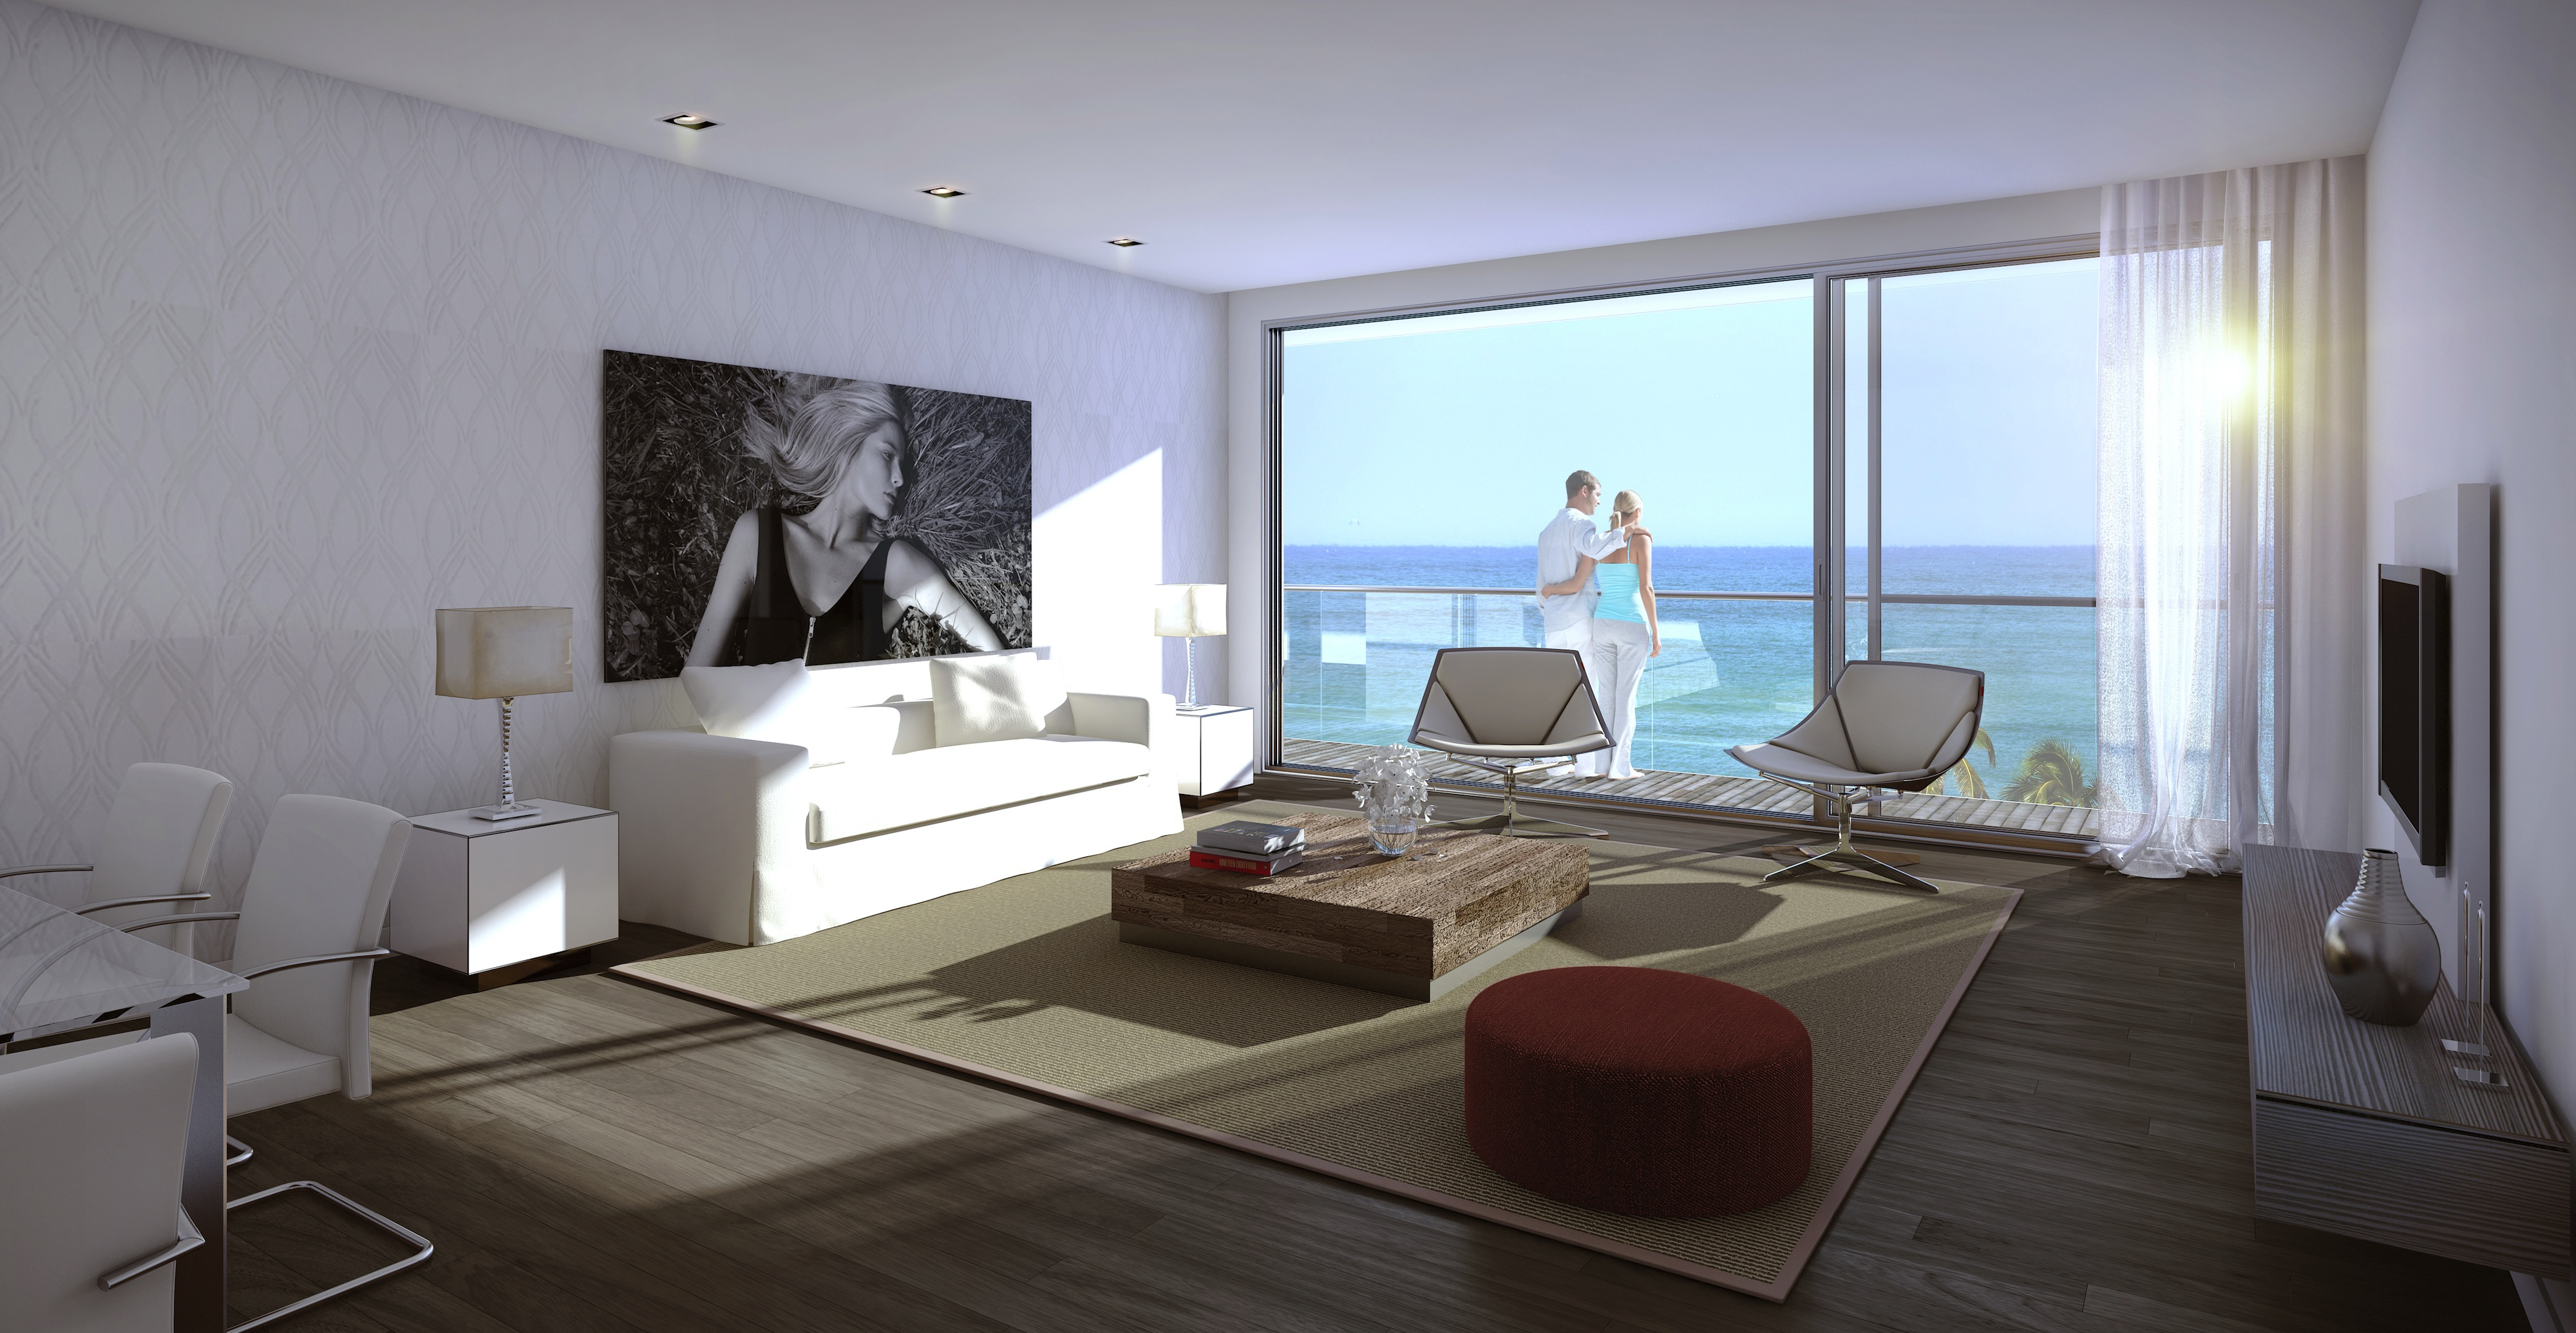 Melia costa hollywood beach resort condo hotel in for Living room 0325 hollywood